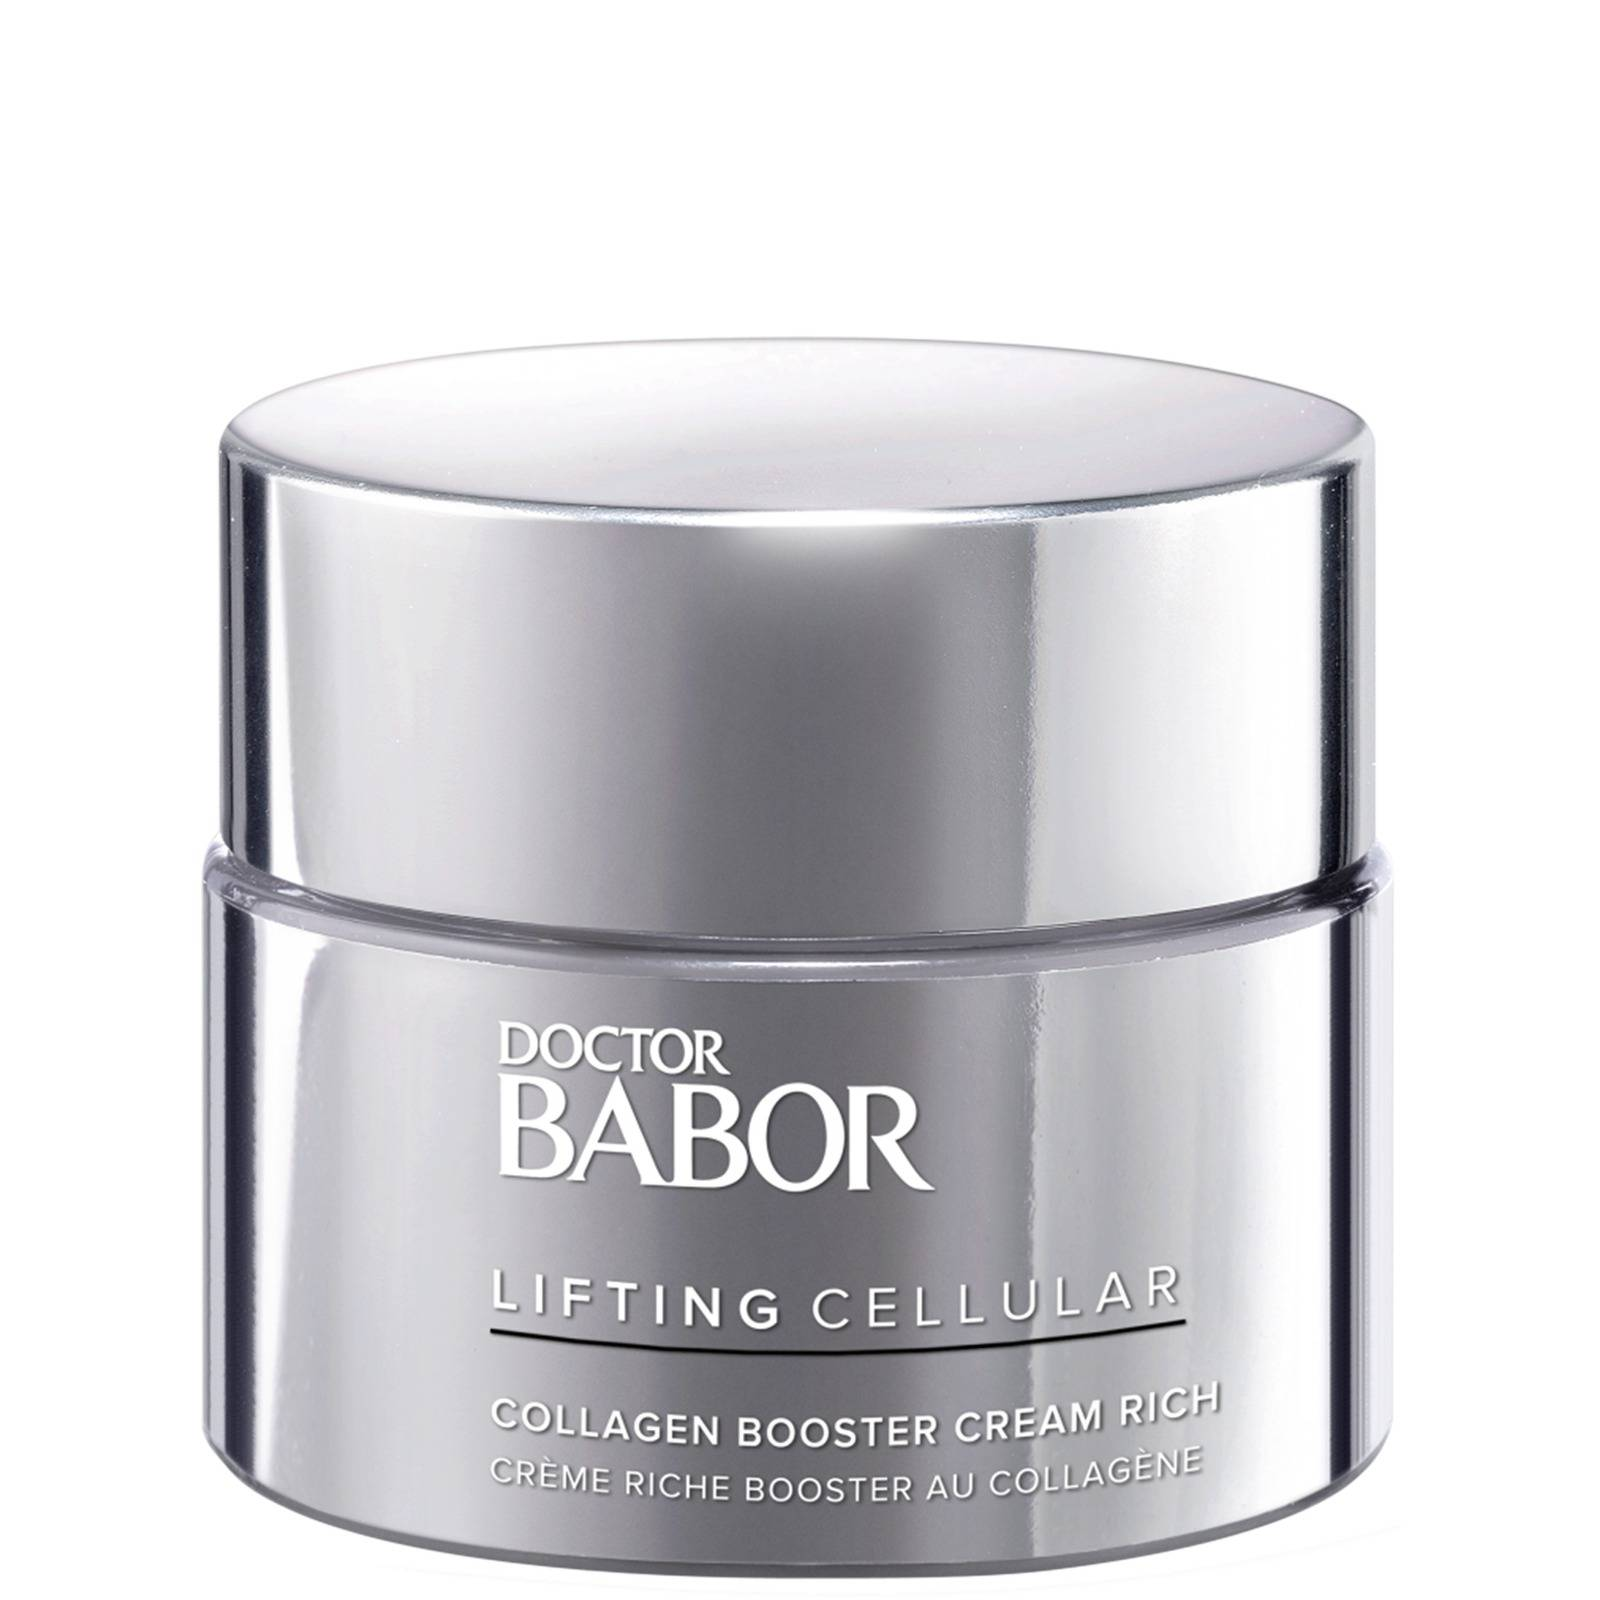 BABOR - Doctor Babor Lifting Cellular: Collagen Booster Cream Rich 50ml for Women